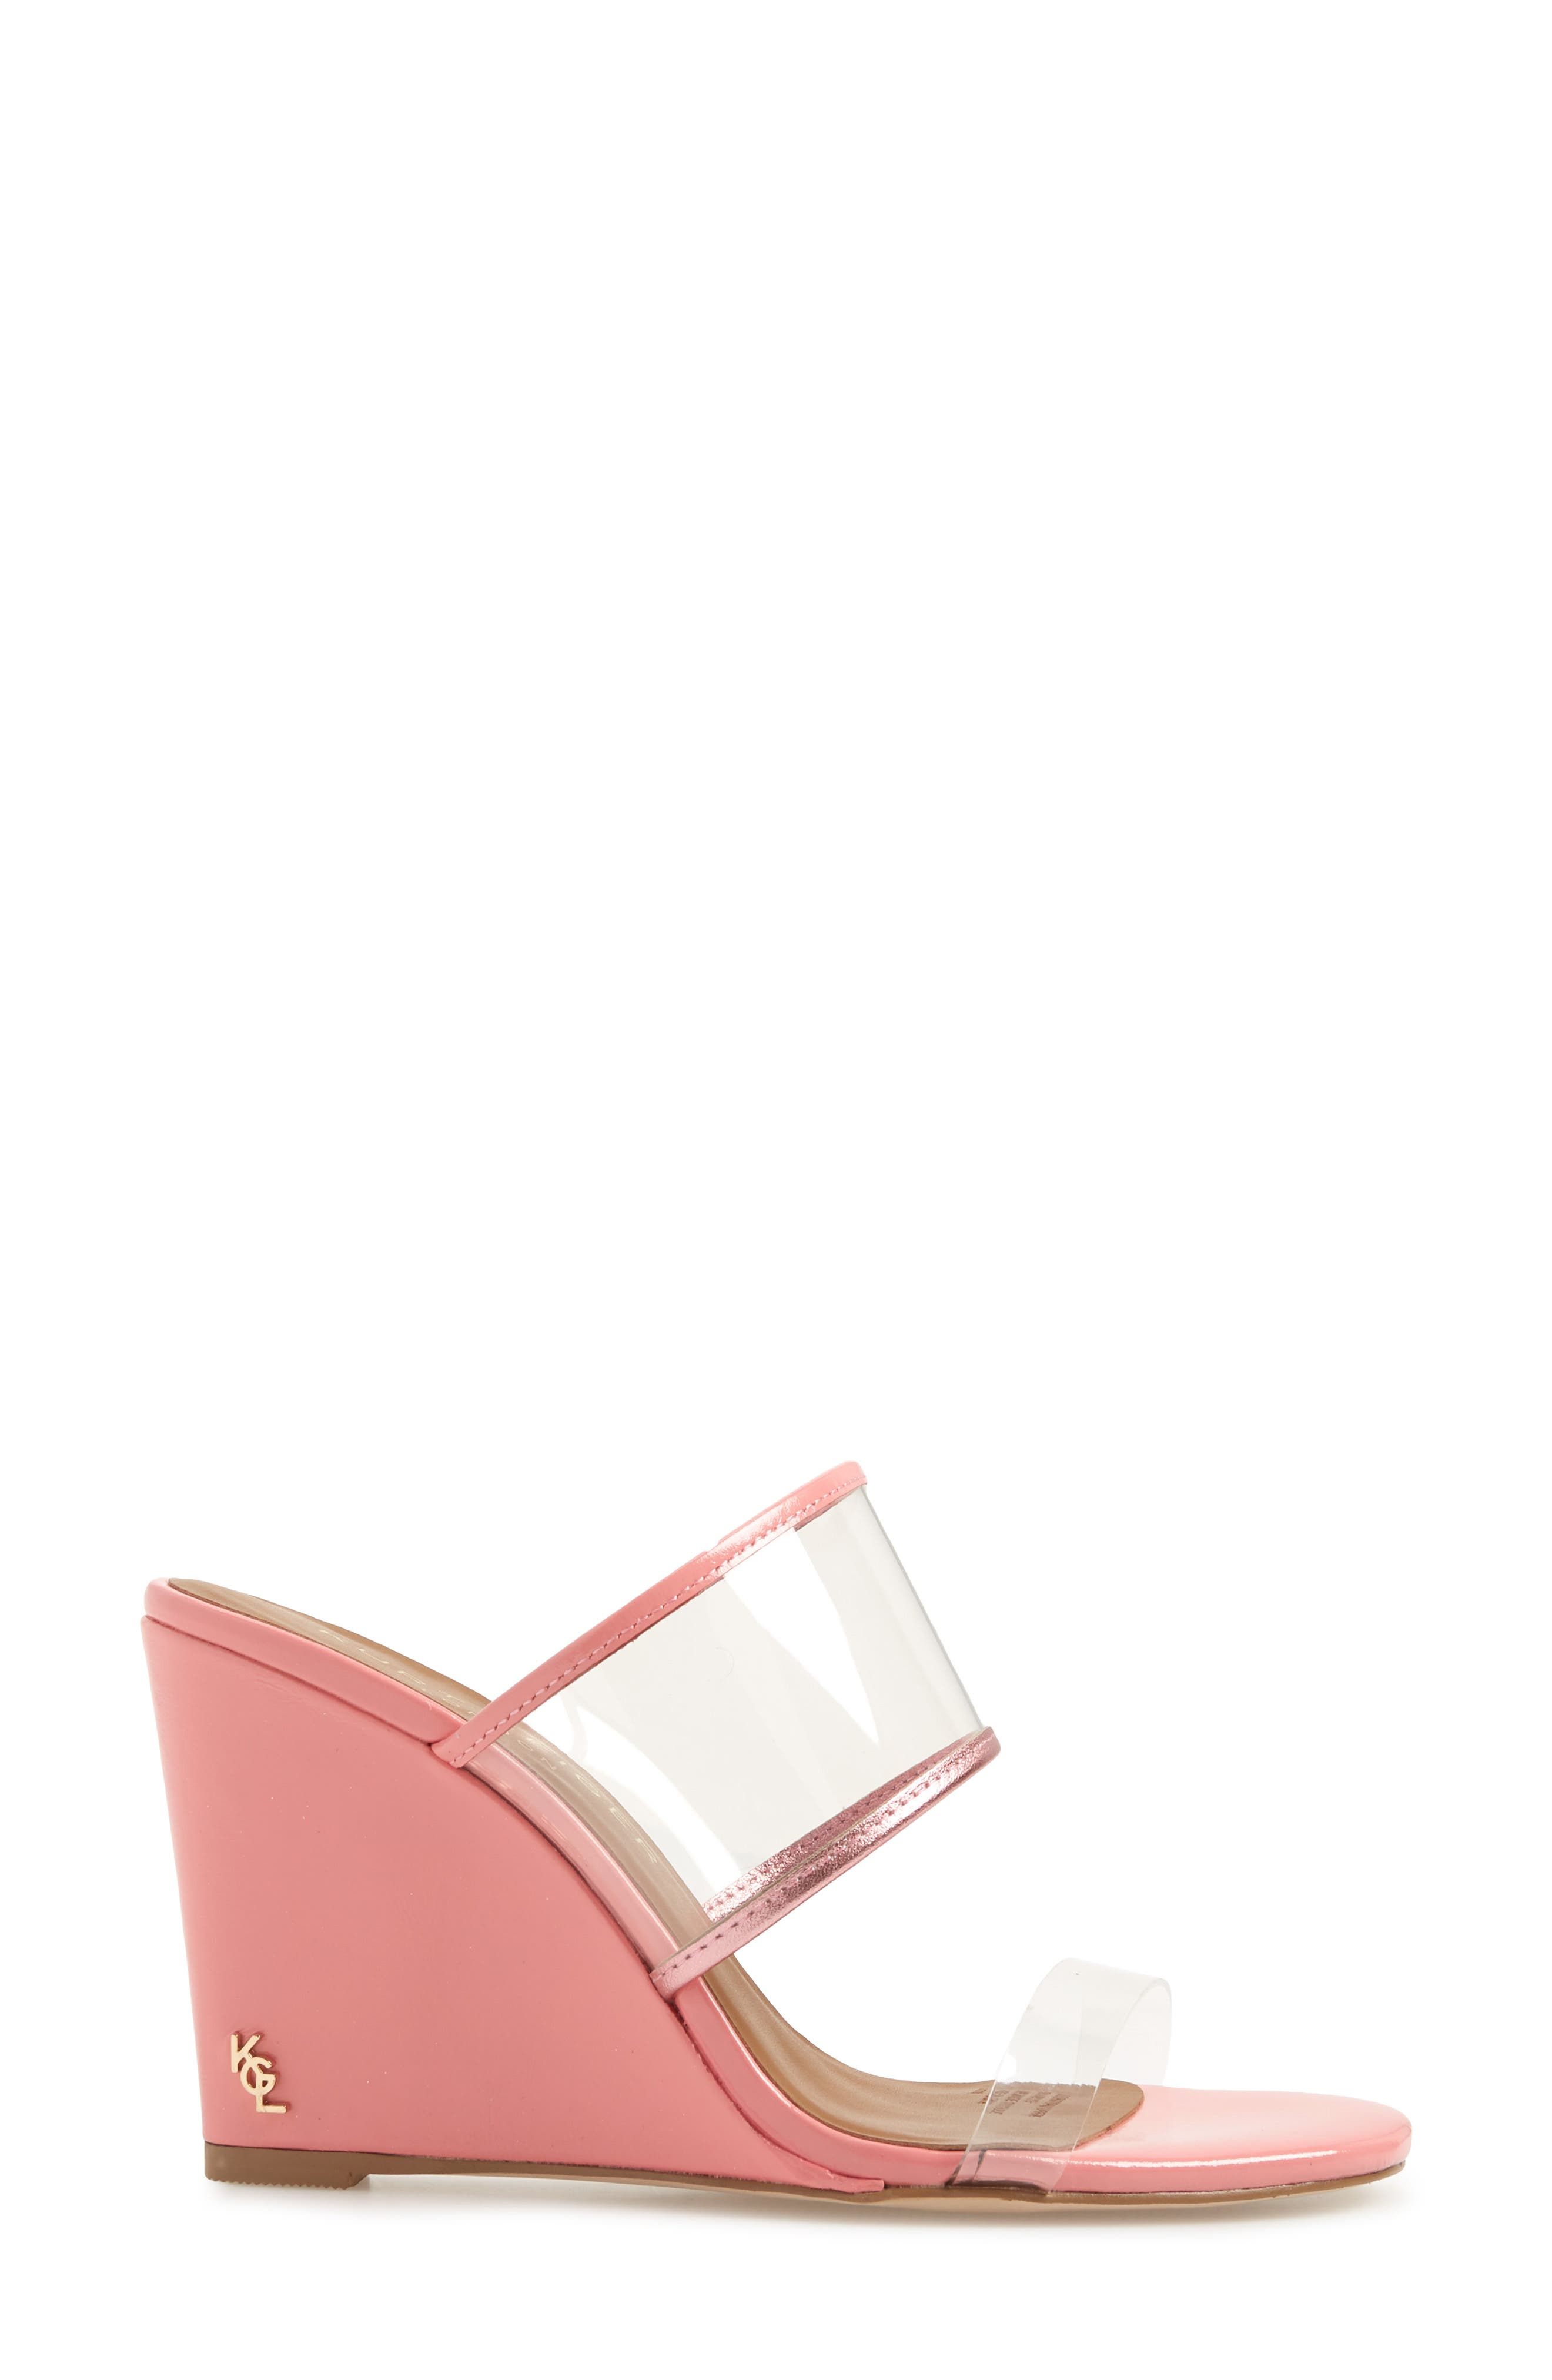 KURT GEIGER LONDON,                             Charing Wedge Slide Sandal,                             Alternate thumbnail 3, color,                             PINK FAUX LEATHER